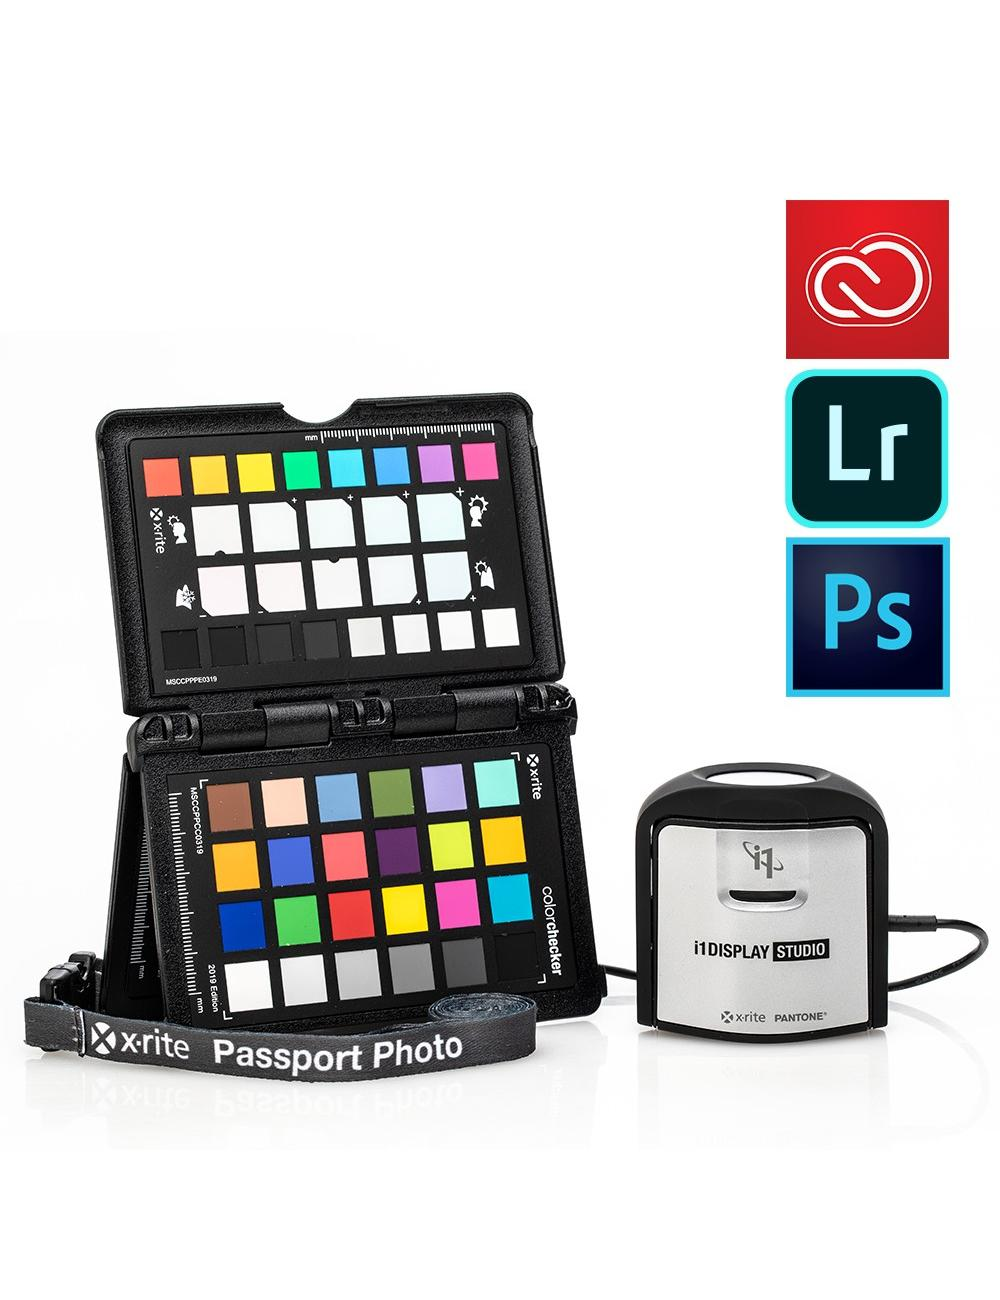 X-Rite i1 ColorChecker Photo Kit including Adobe Creative Cloud Photography